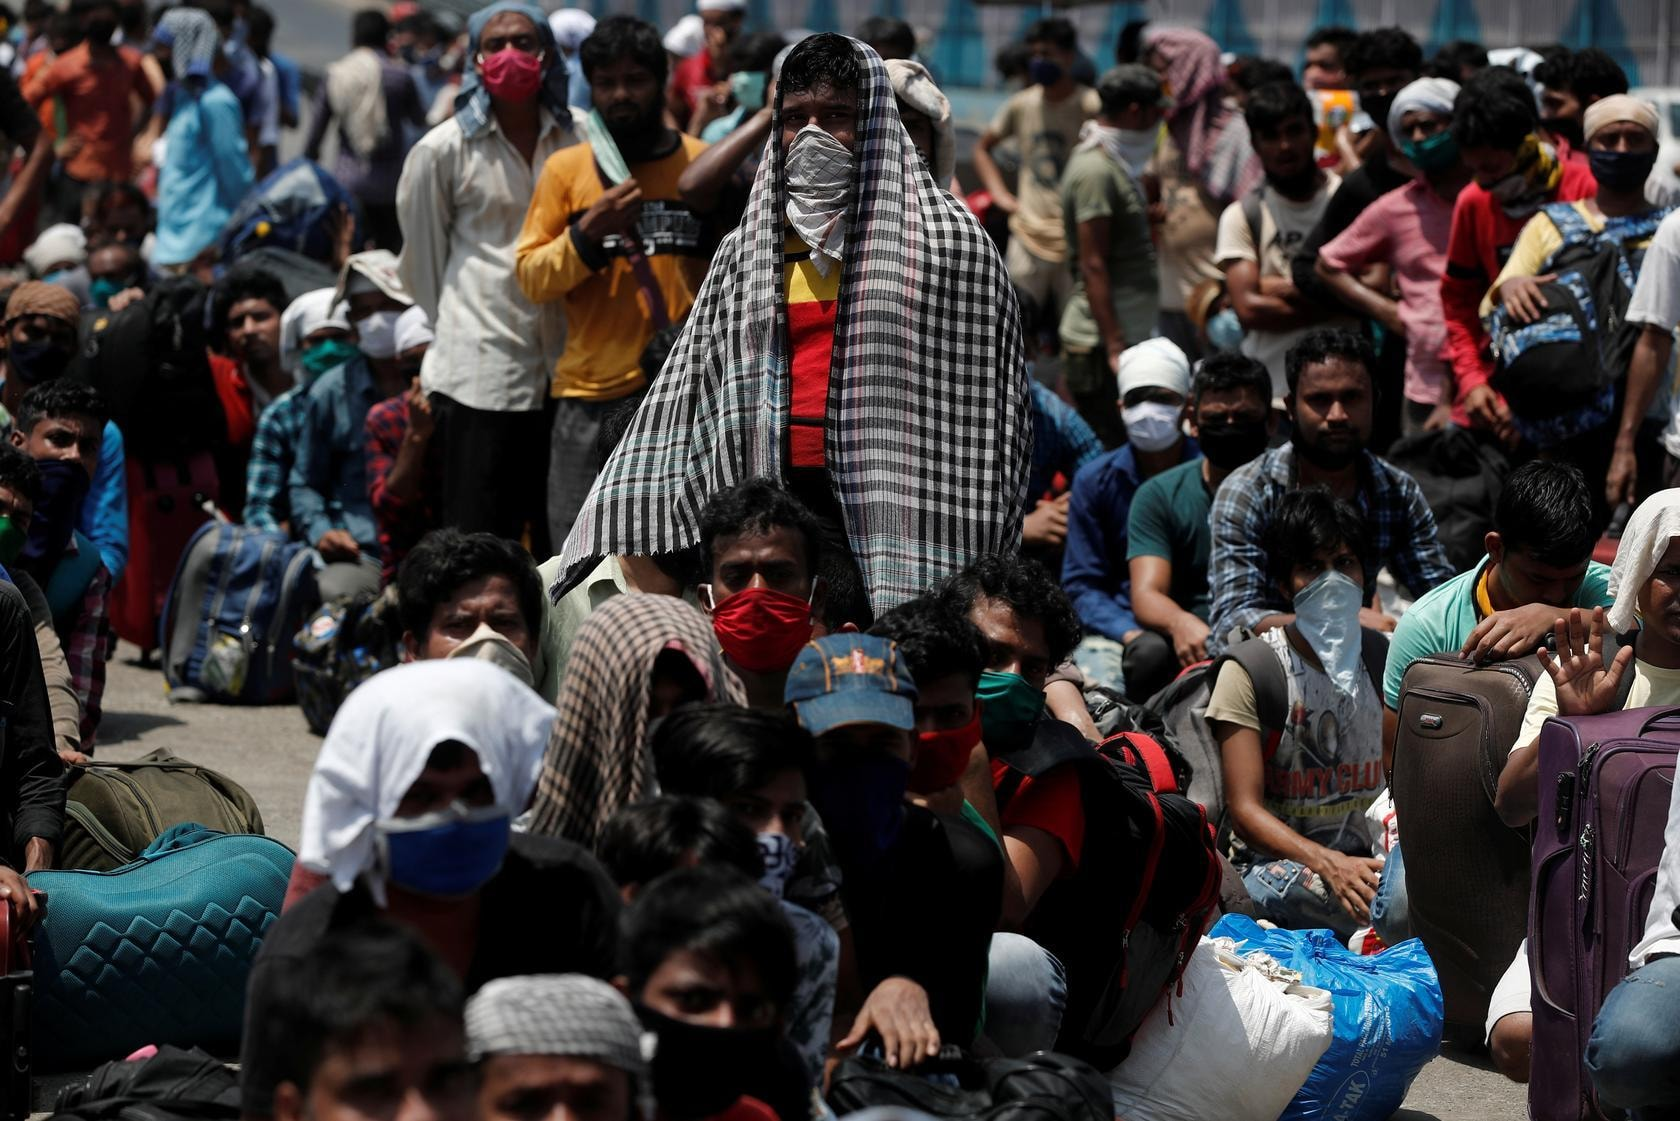 People wait in a line to board a train that will take them to their home state of Uttar Pradesh, during an extended lockdown to slow the spreading of the coronavirus disease, in Mumbai, India, May 26. — Reuters